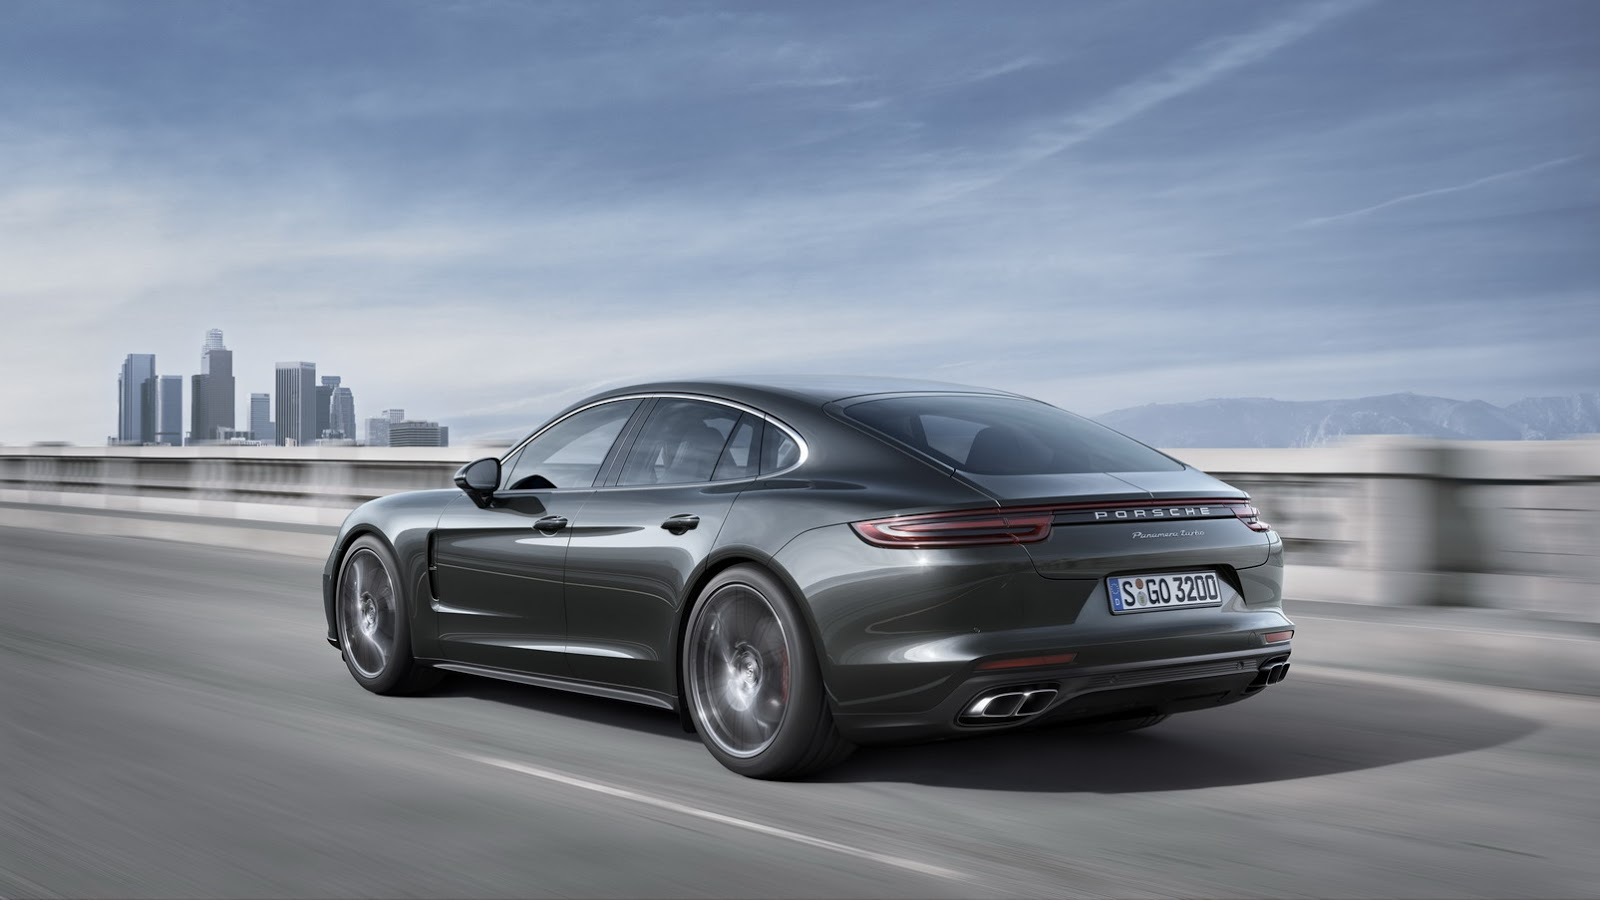 2019 Porsche Panamera Diesel photo - 1